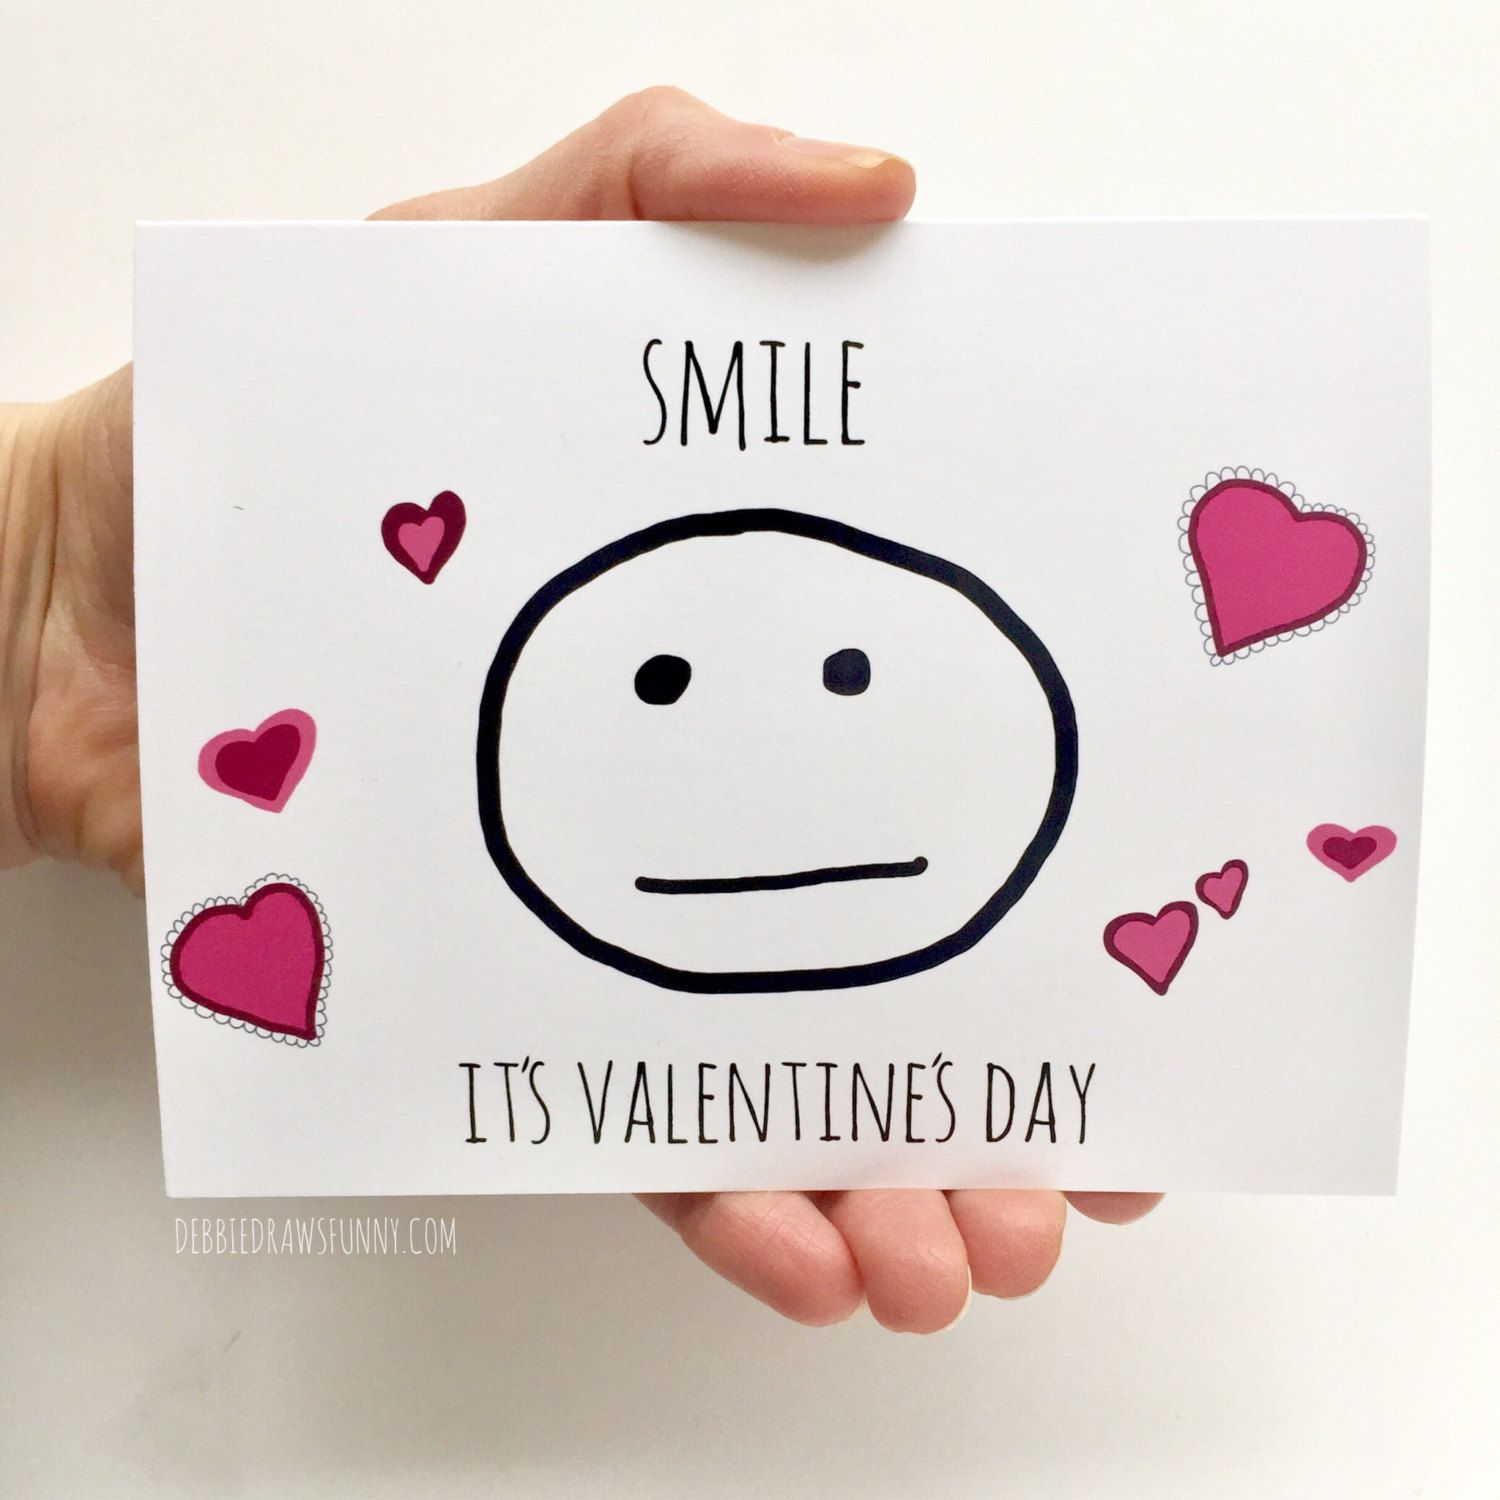 smile its valentines day funny card valentines valentines funny cards friend valentine card - Etsy Valentines Cards